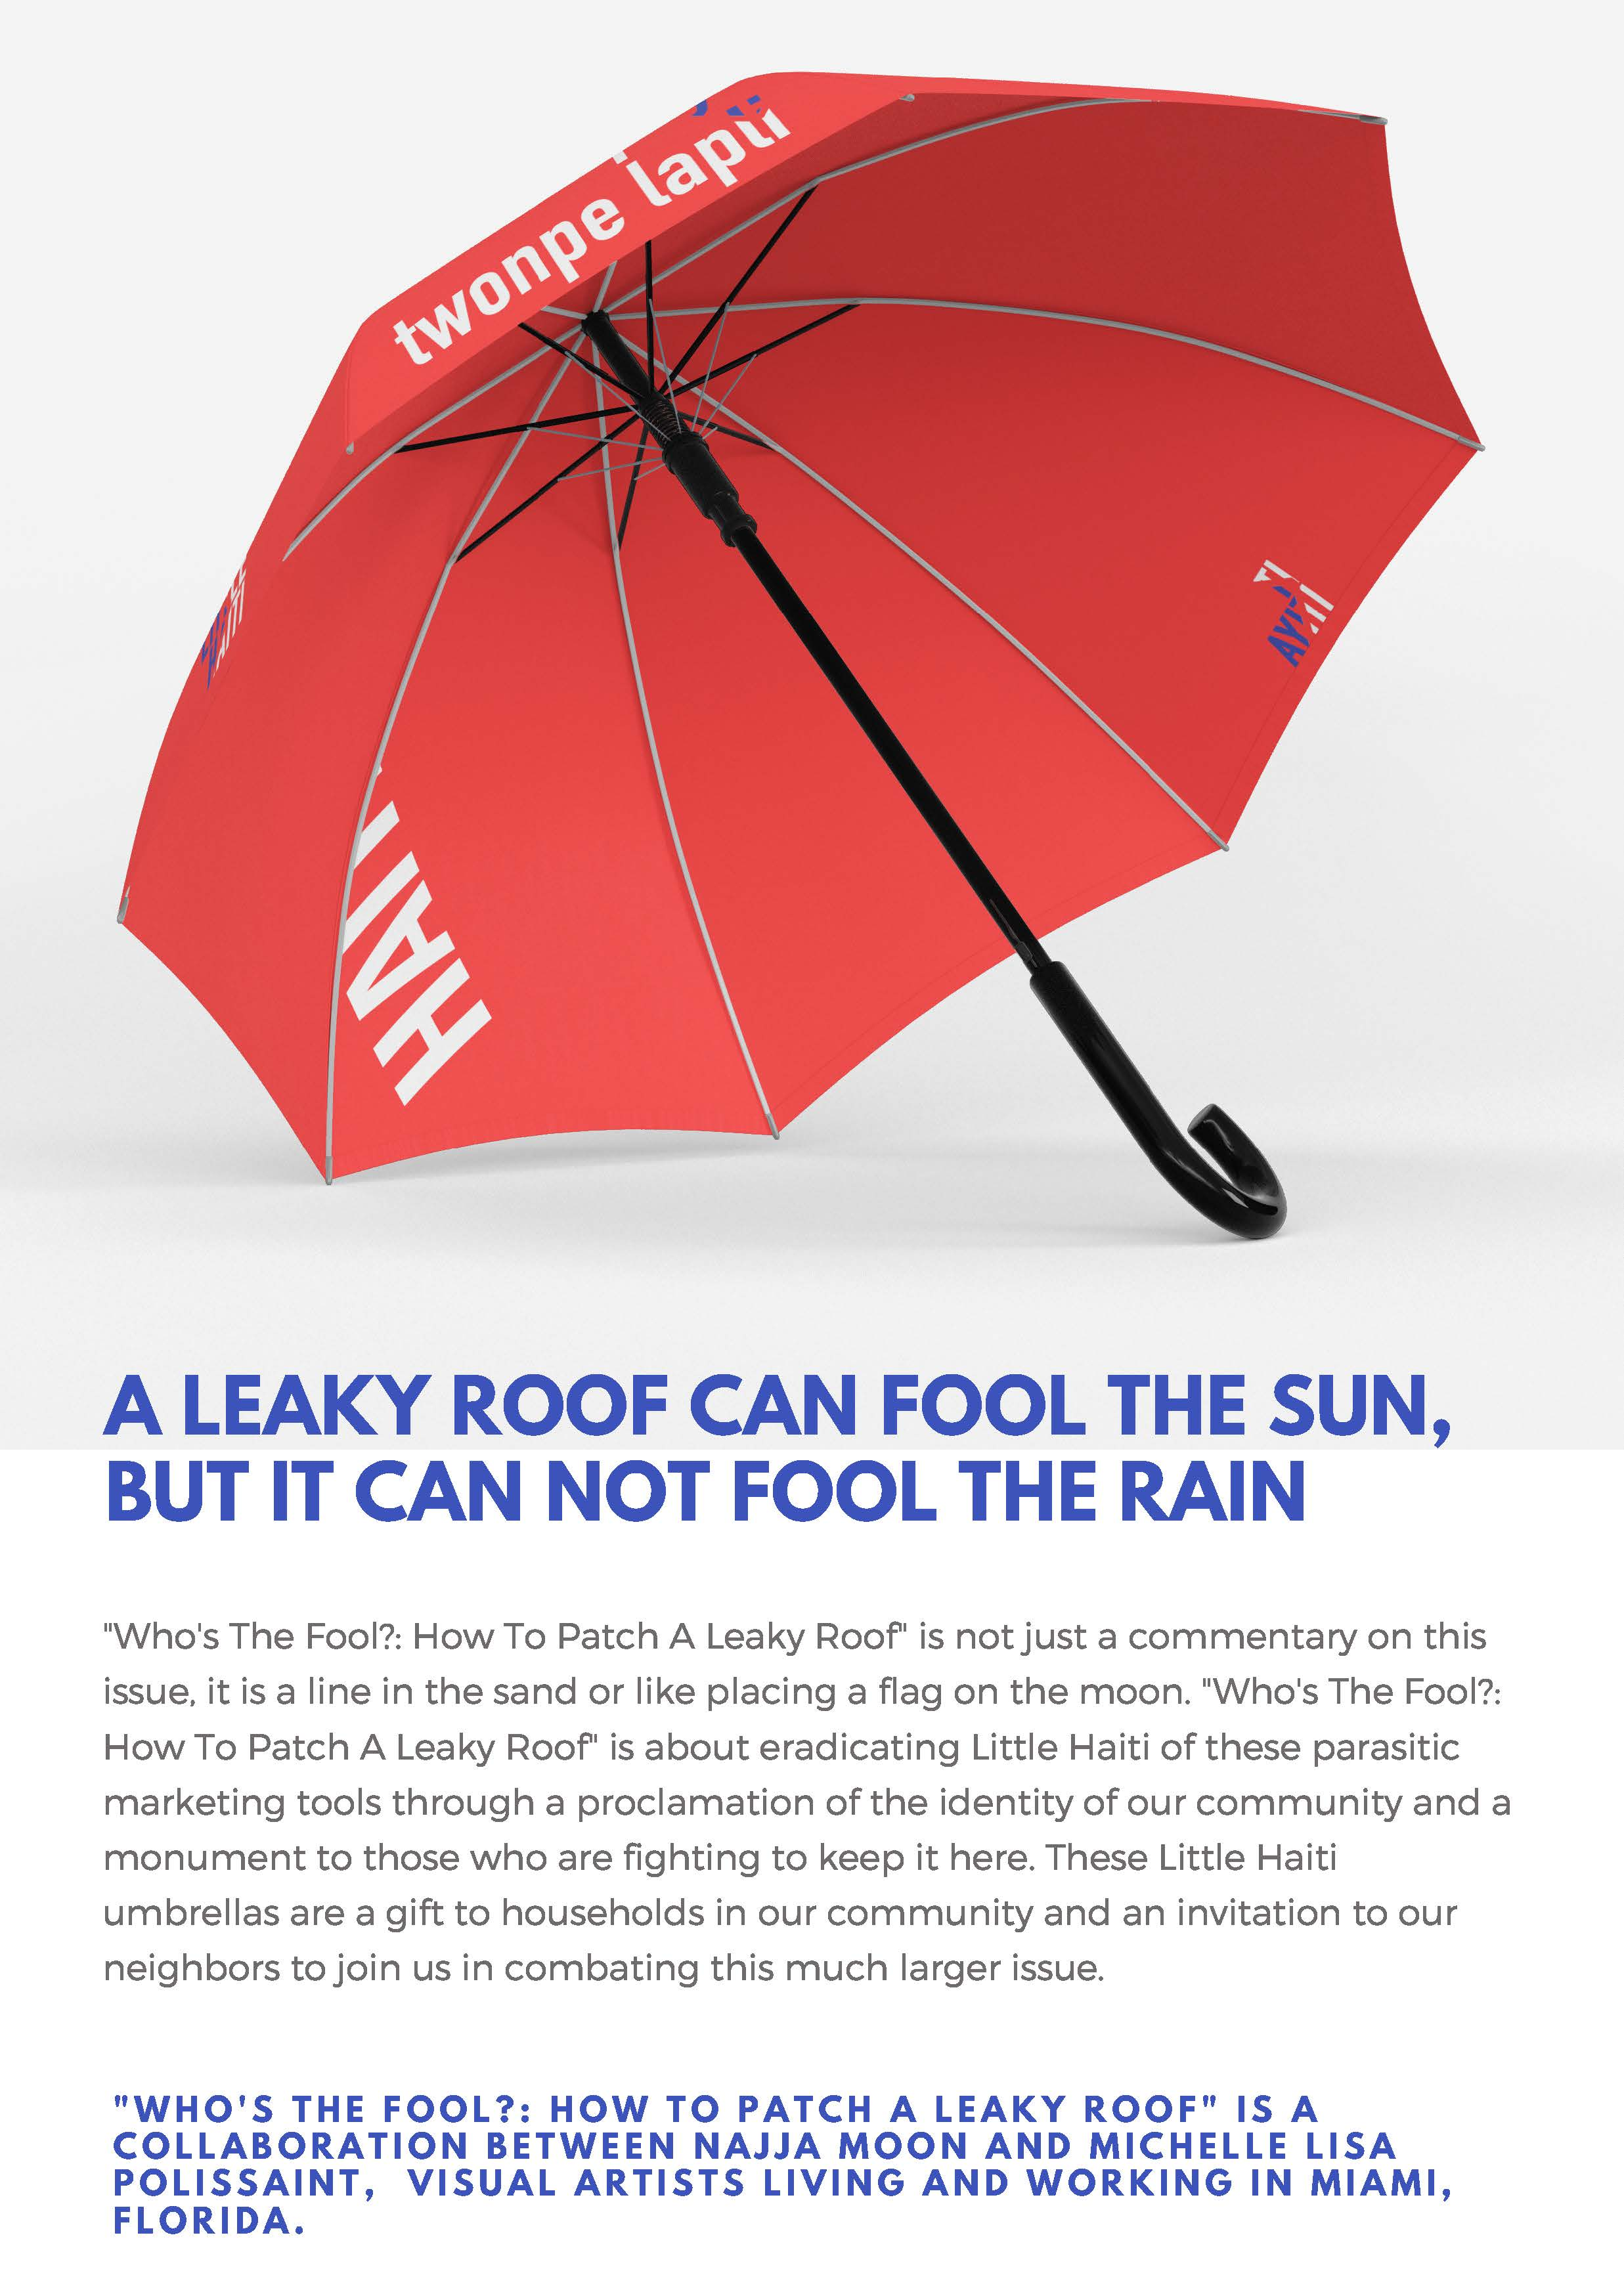 How To Patch a Leaky Roof - Najja Moon & Michelle Lisa Polissaint_Page_3.jpg